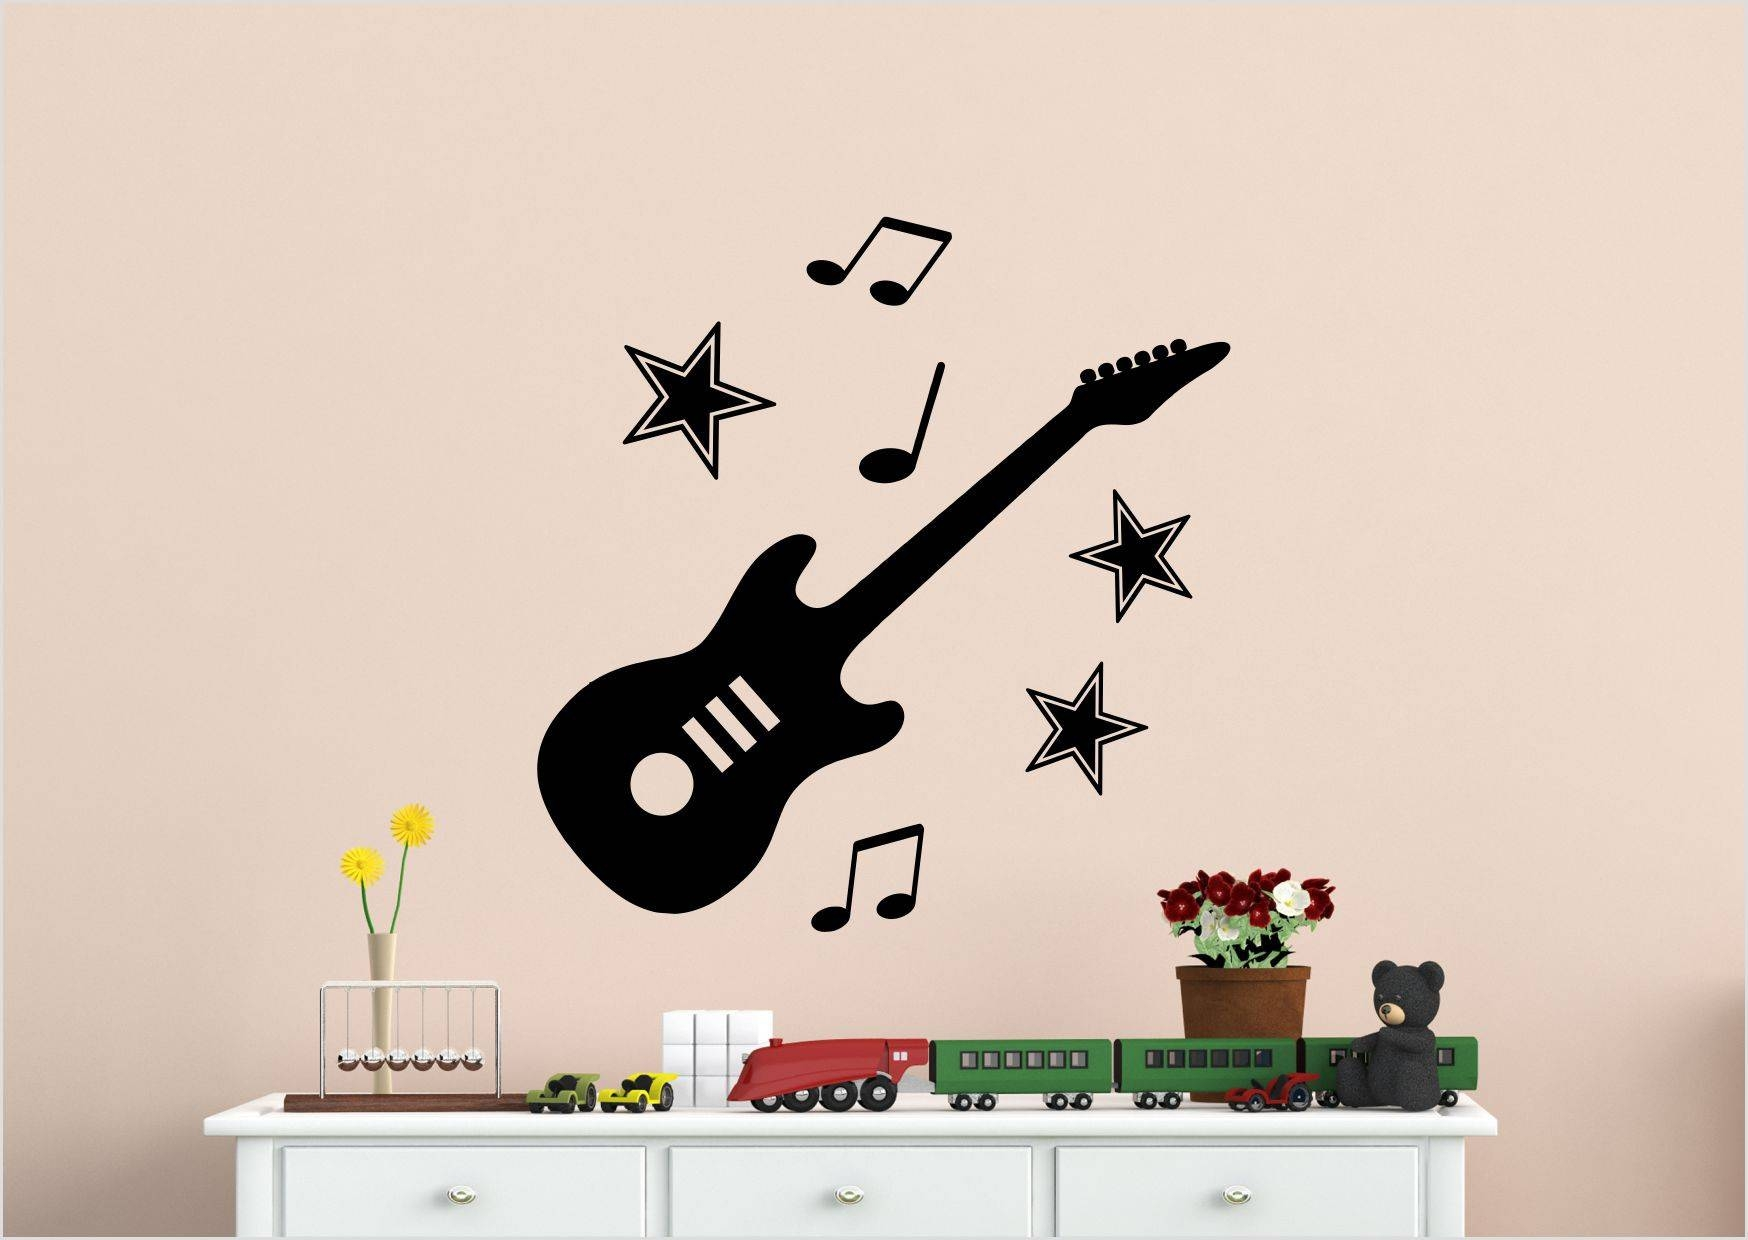 Music Notes Wall Art Decals Images That Really Cool – Desainnow For Recent Music Note Art For Walls (View 25 of 25)